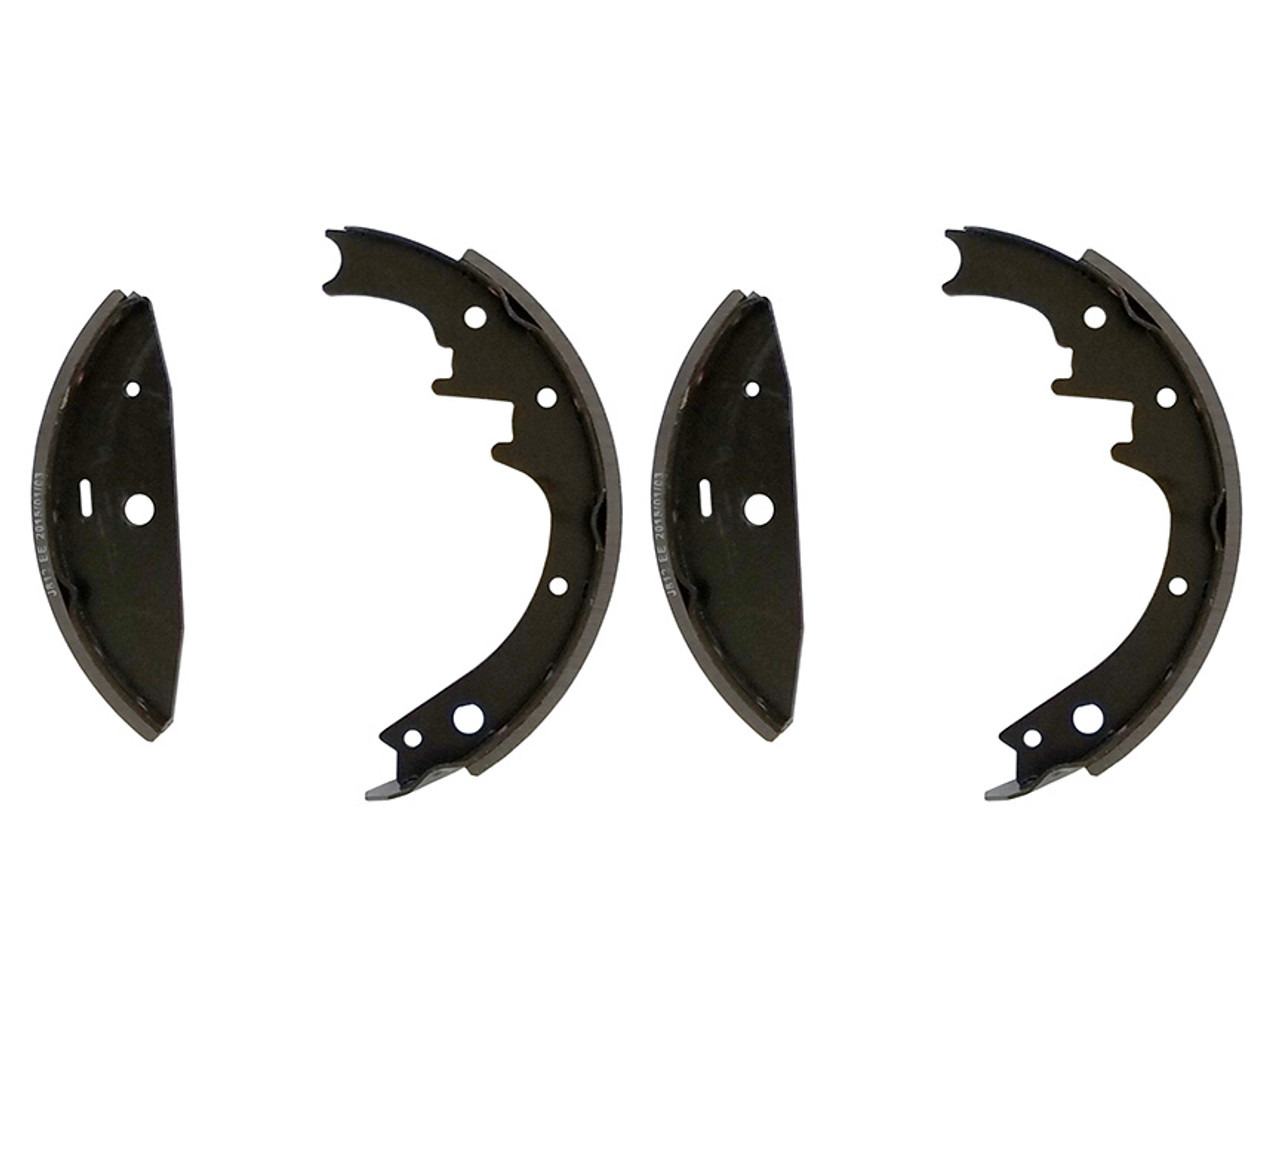 "7812 --- Shoe & Lining Kit for 10"" Hydraulic Free Backing Brakes"